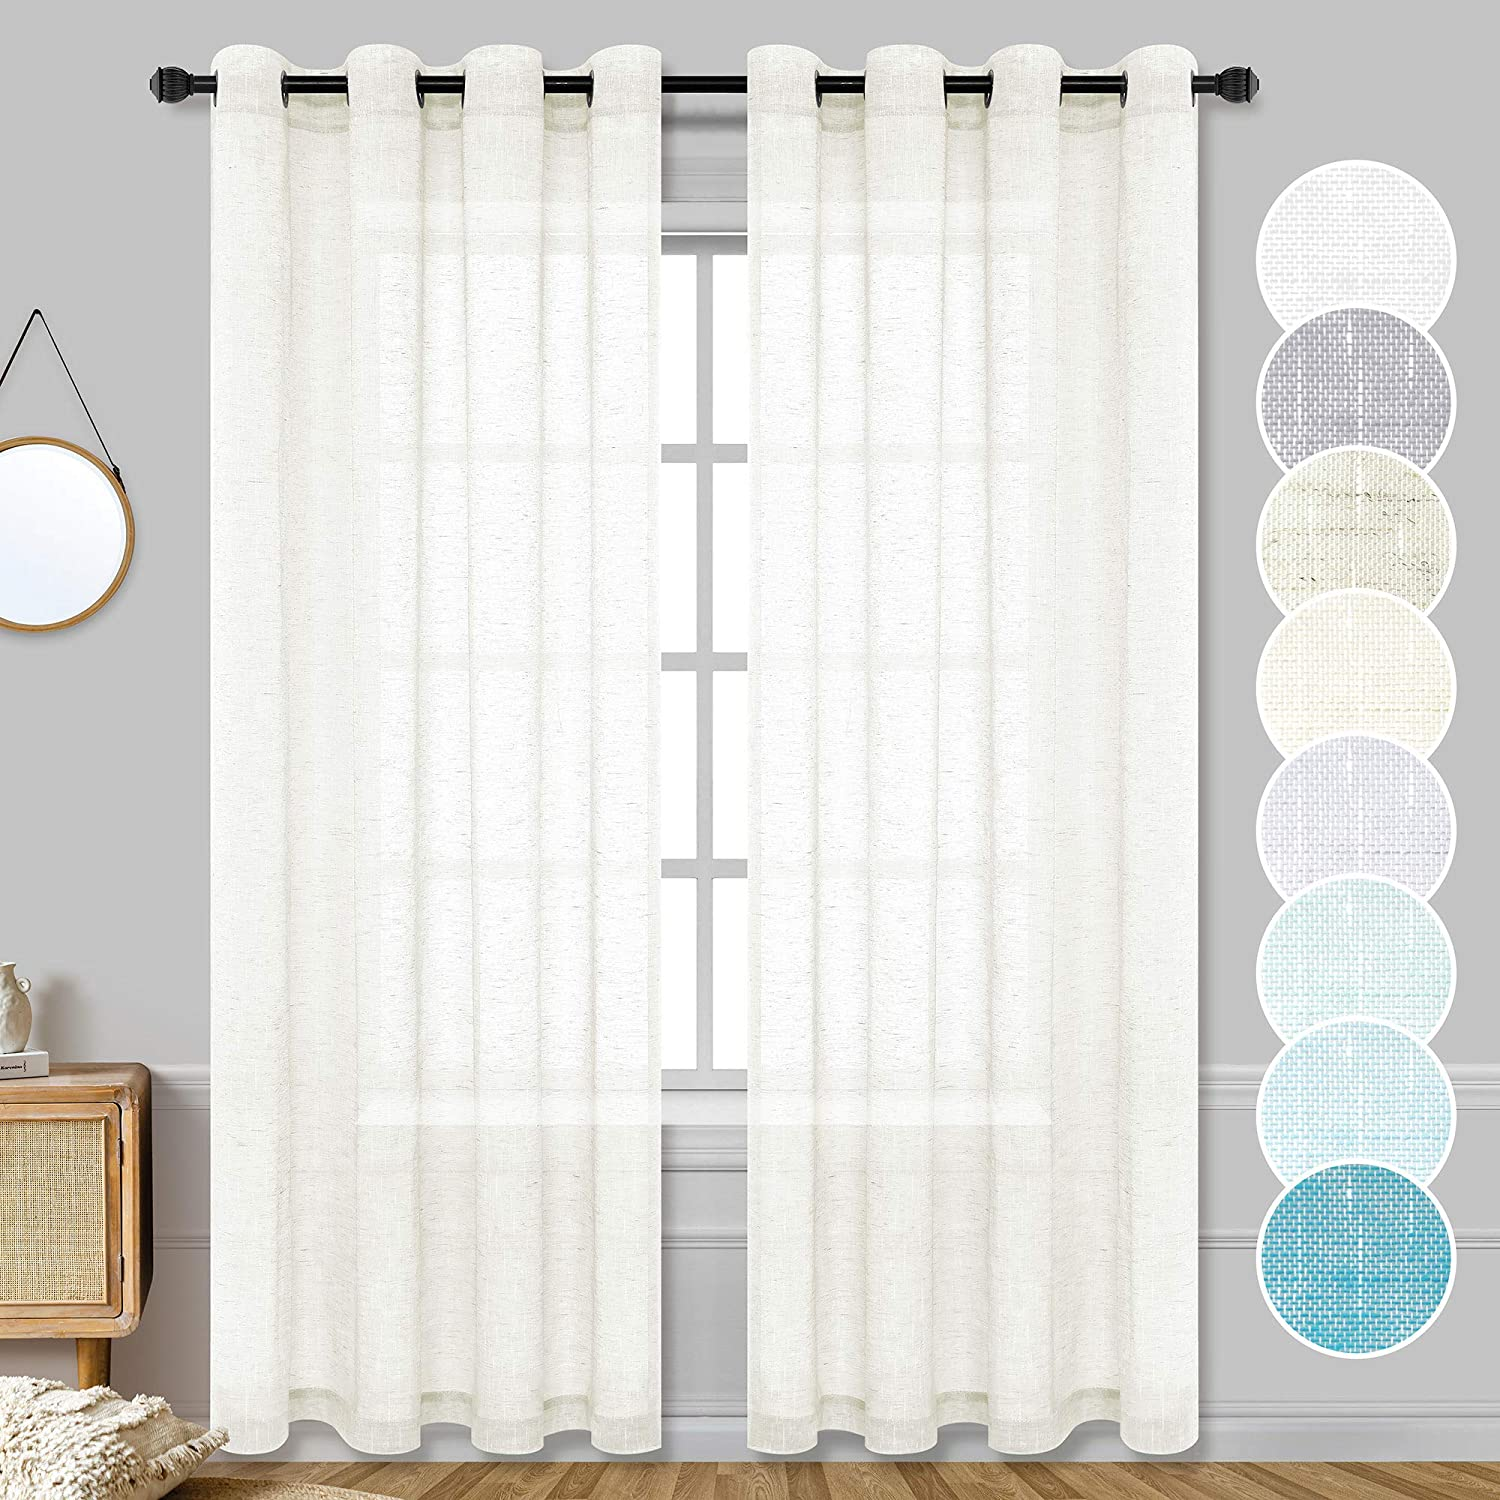 Ivory Sheer Curtains 95 Inches Long for Dining Room 2 Pack Grommet Light Filtering Privacy Semi Sheer Faux Linen Curtains for Living Room Bedroom Windows Kitchen Entry door Home Decor Accents 52 Width